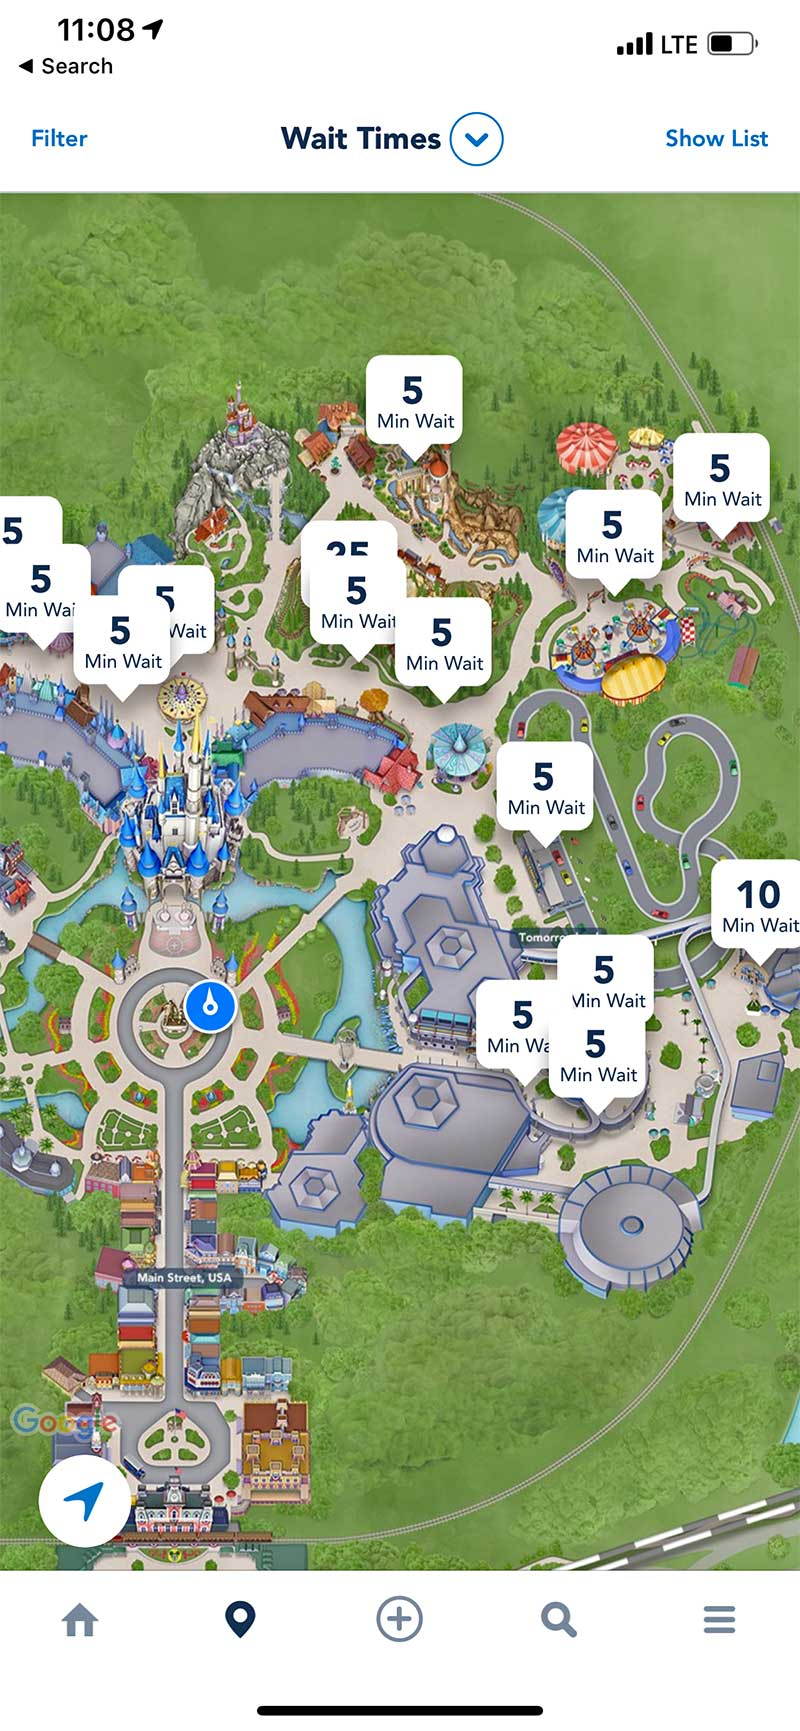 Disney After Hours Events - Magic Kingdom Wait Times